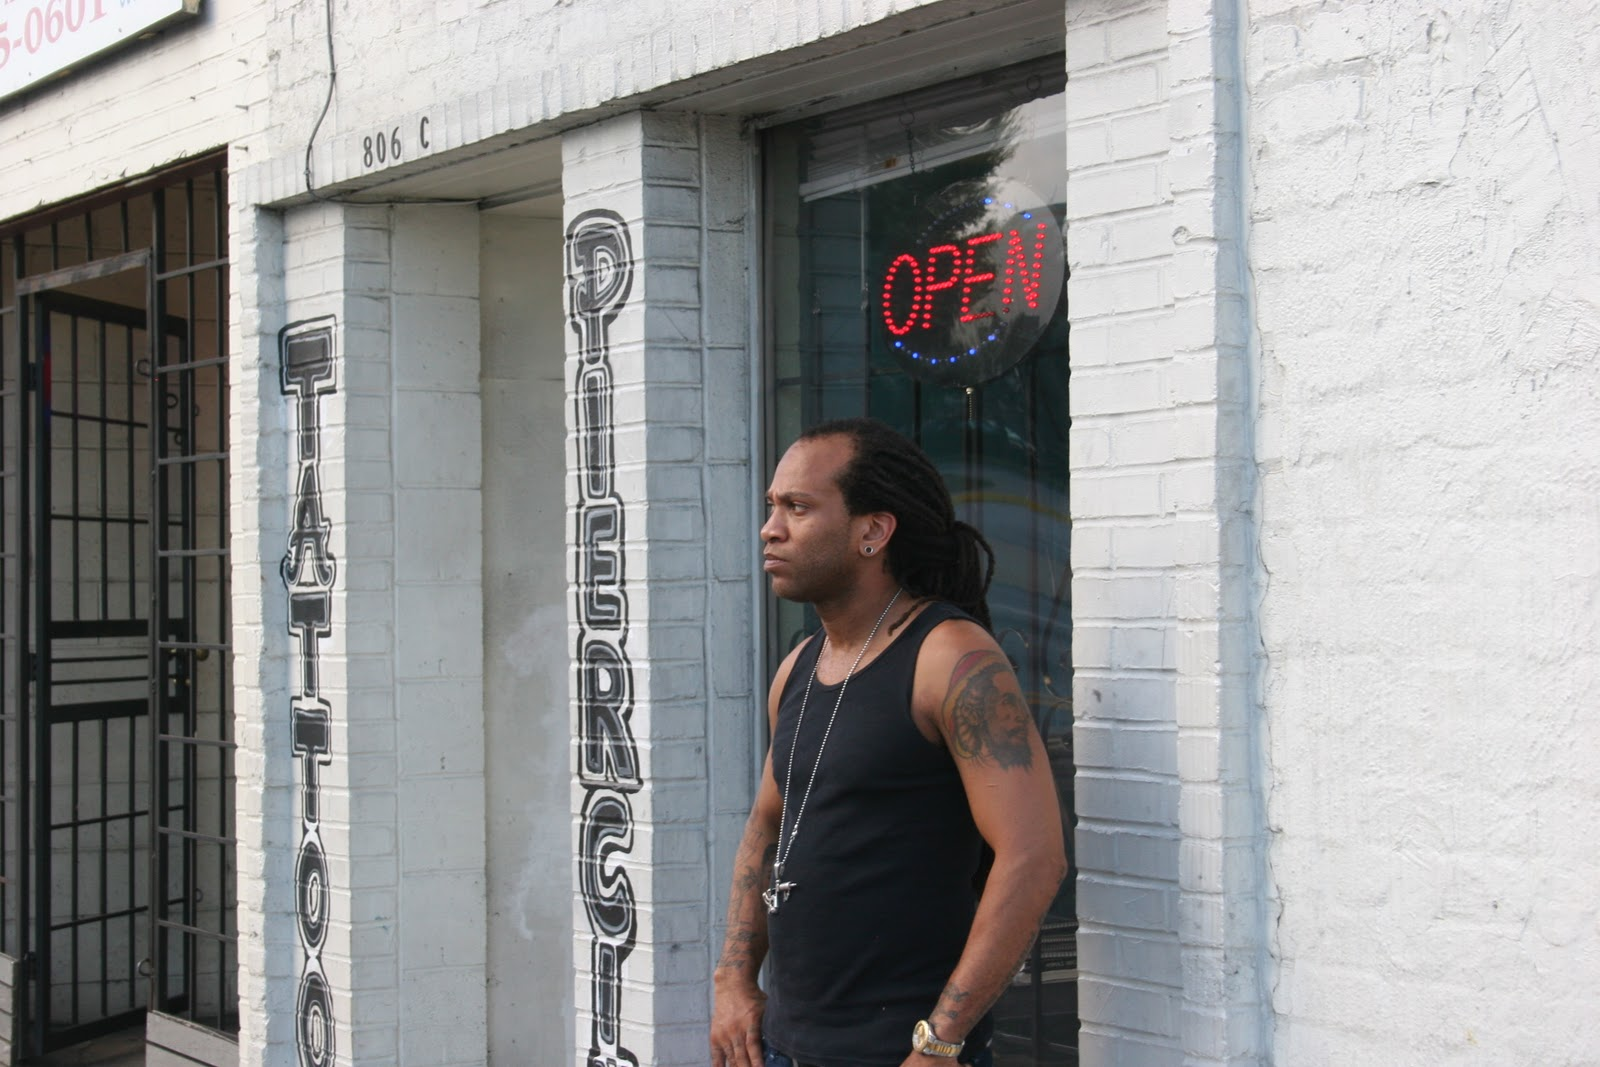 ... tattoo operates a store front salon specializing in tattoo and body